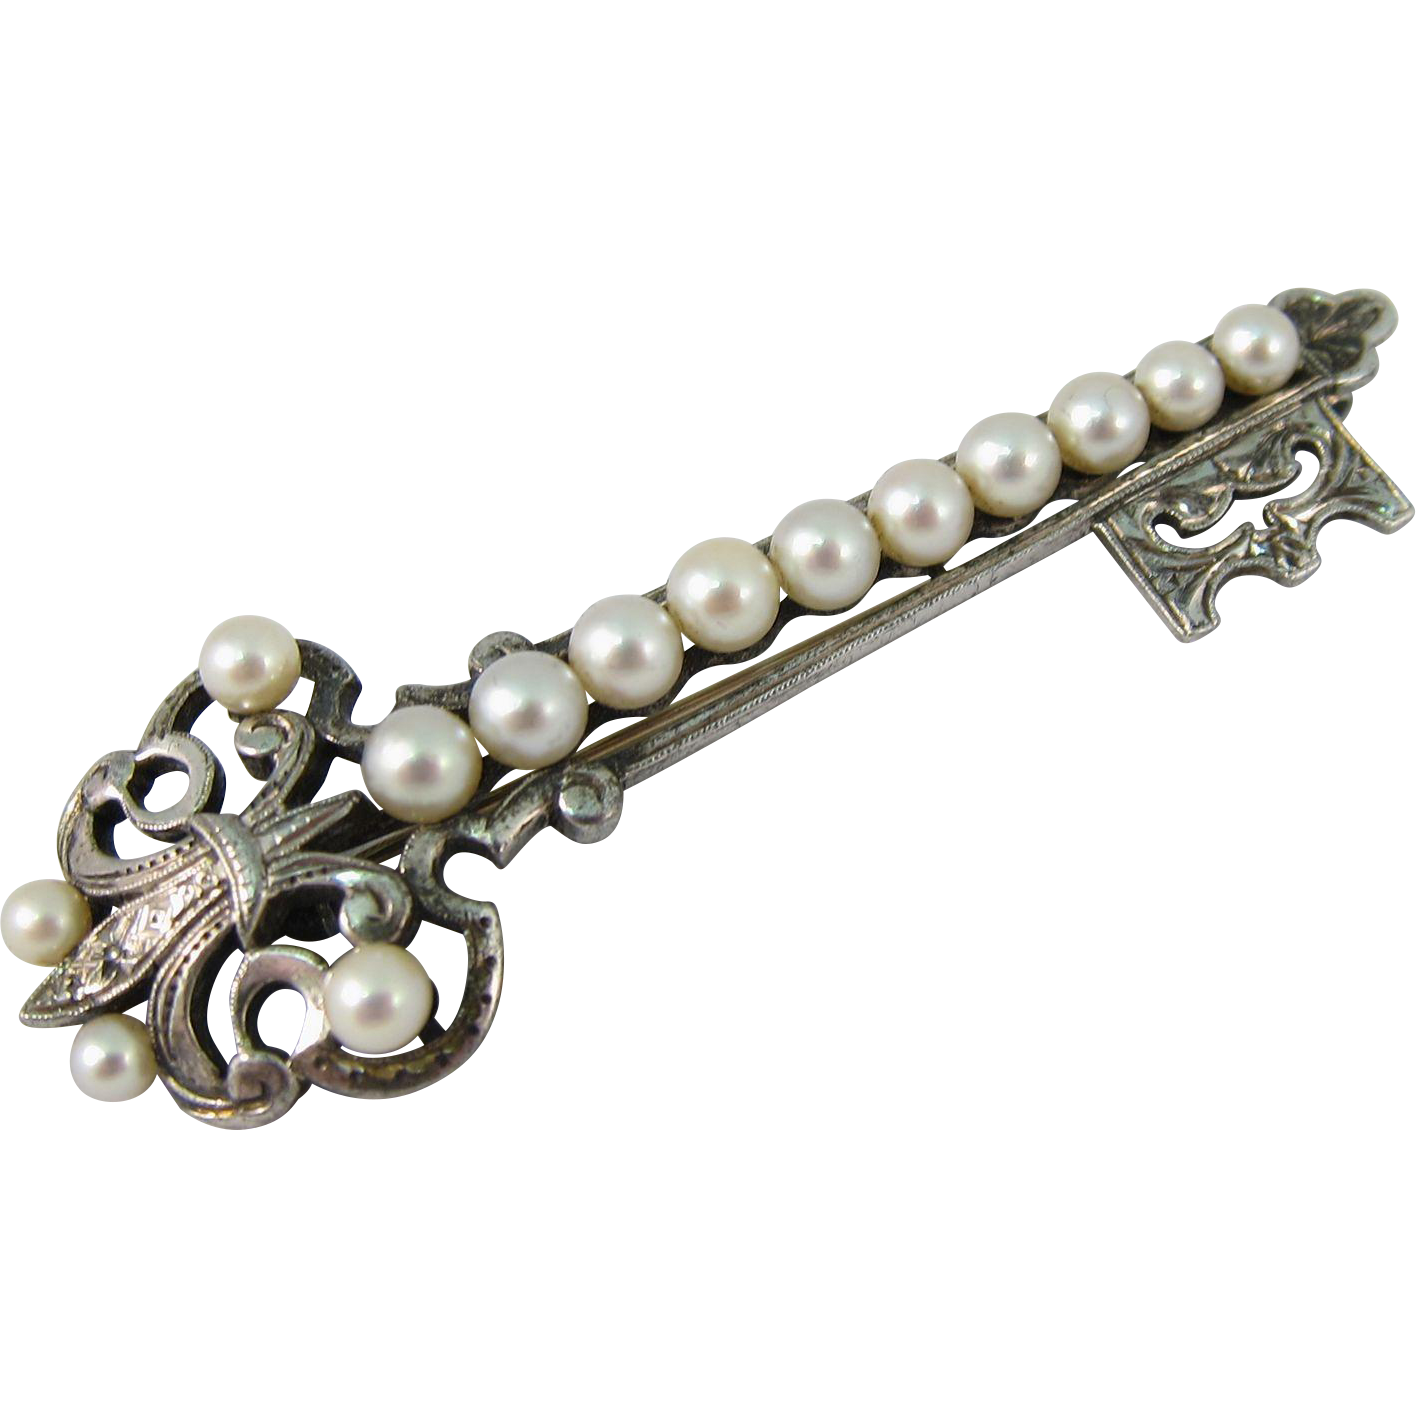 Vintage Sterling Silver Mikimoto Cultured Pearls Key Brooch Pin